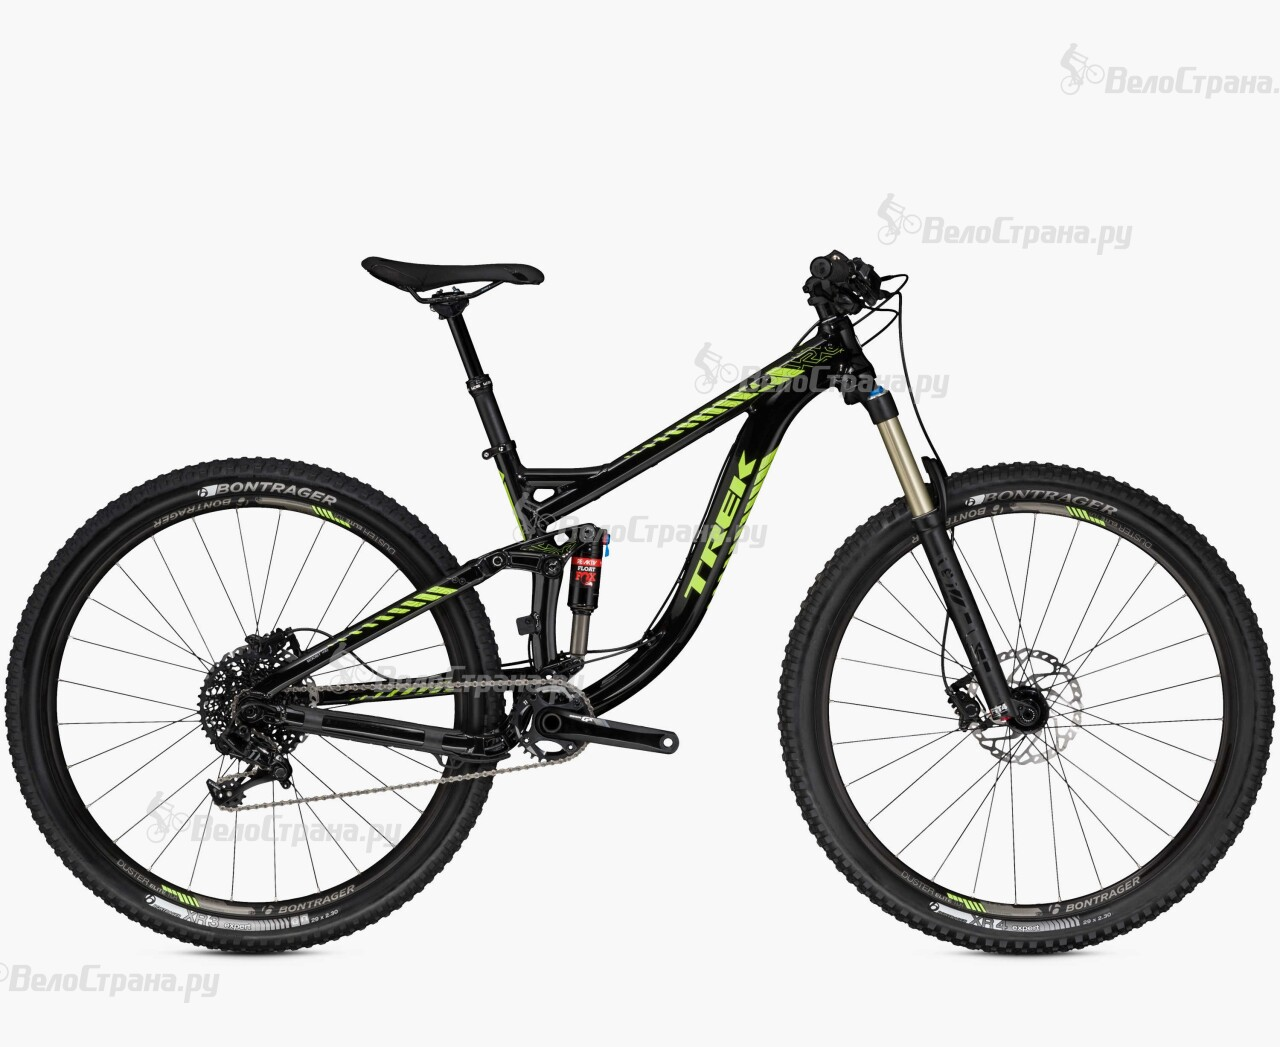 Велосипед Trek Remedy 8 29 (2016) велосипед trek remedy 7 27 5 2016